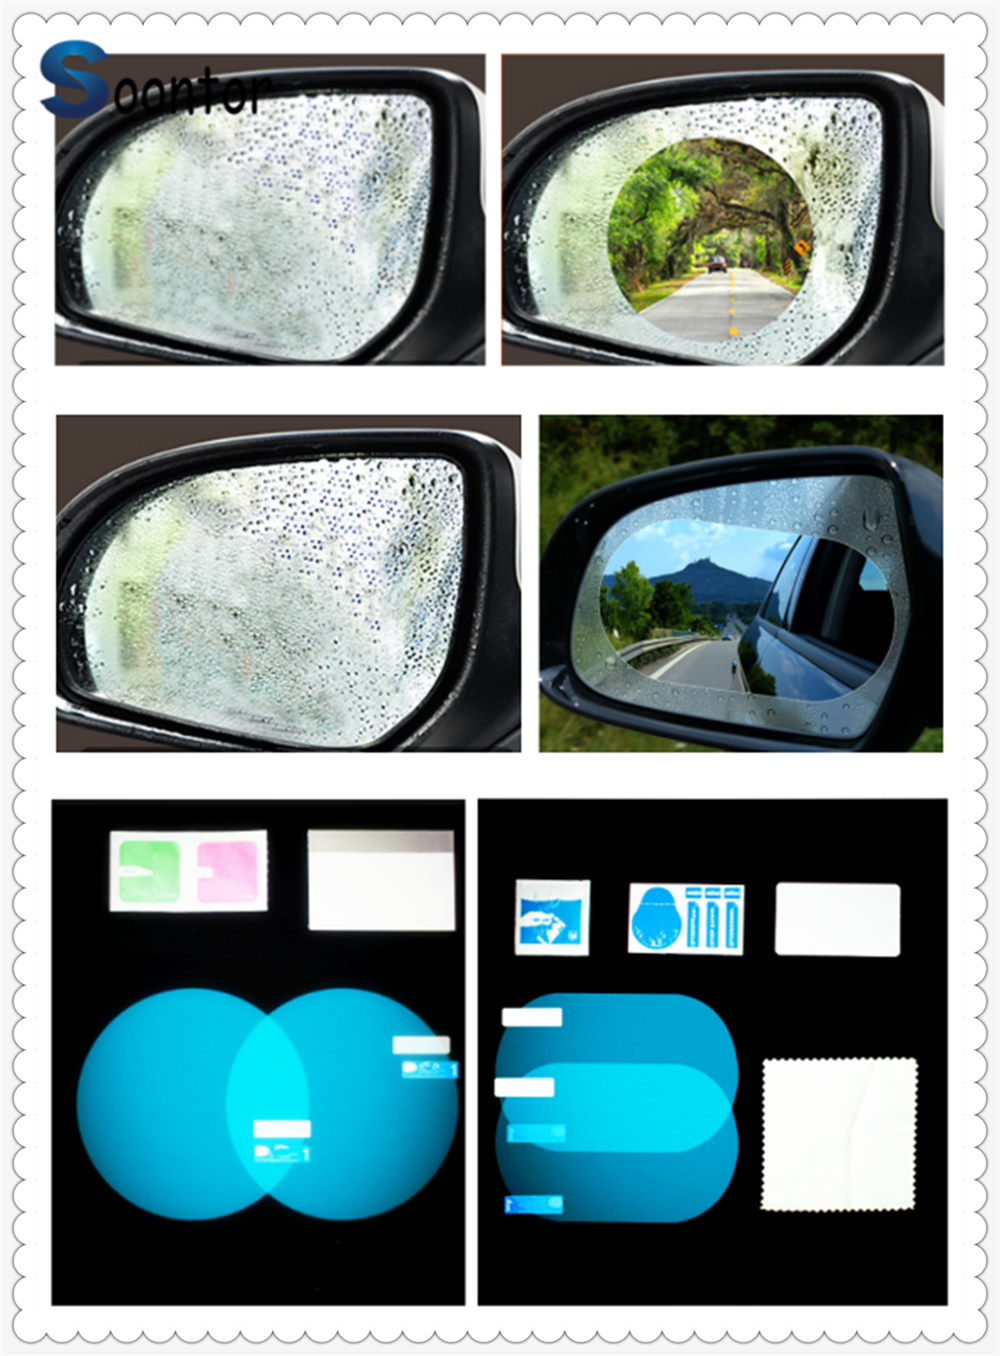 2PCS car rearview mirror anti-fog film rain film For BMW E46 E39 E38 E90 E60 E36 F30 F30 E34 F10 F20 E92 E38 E91 E53 E70 X5 X3 image